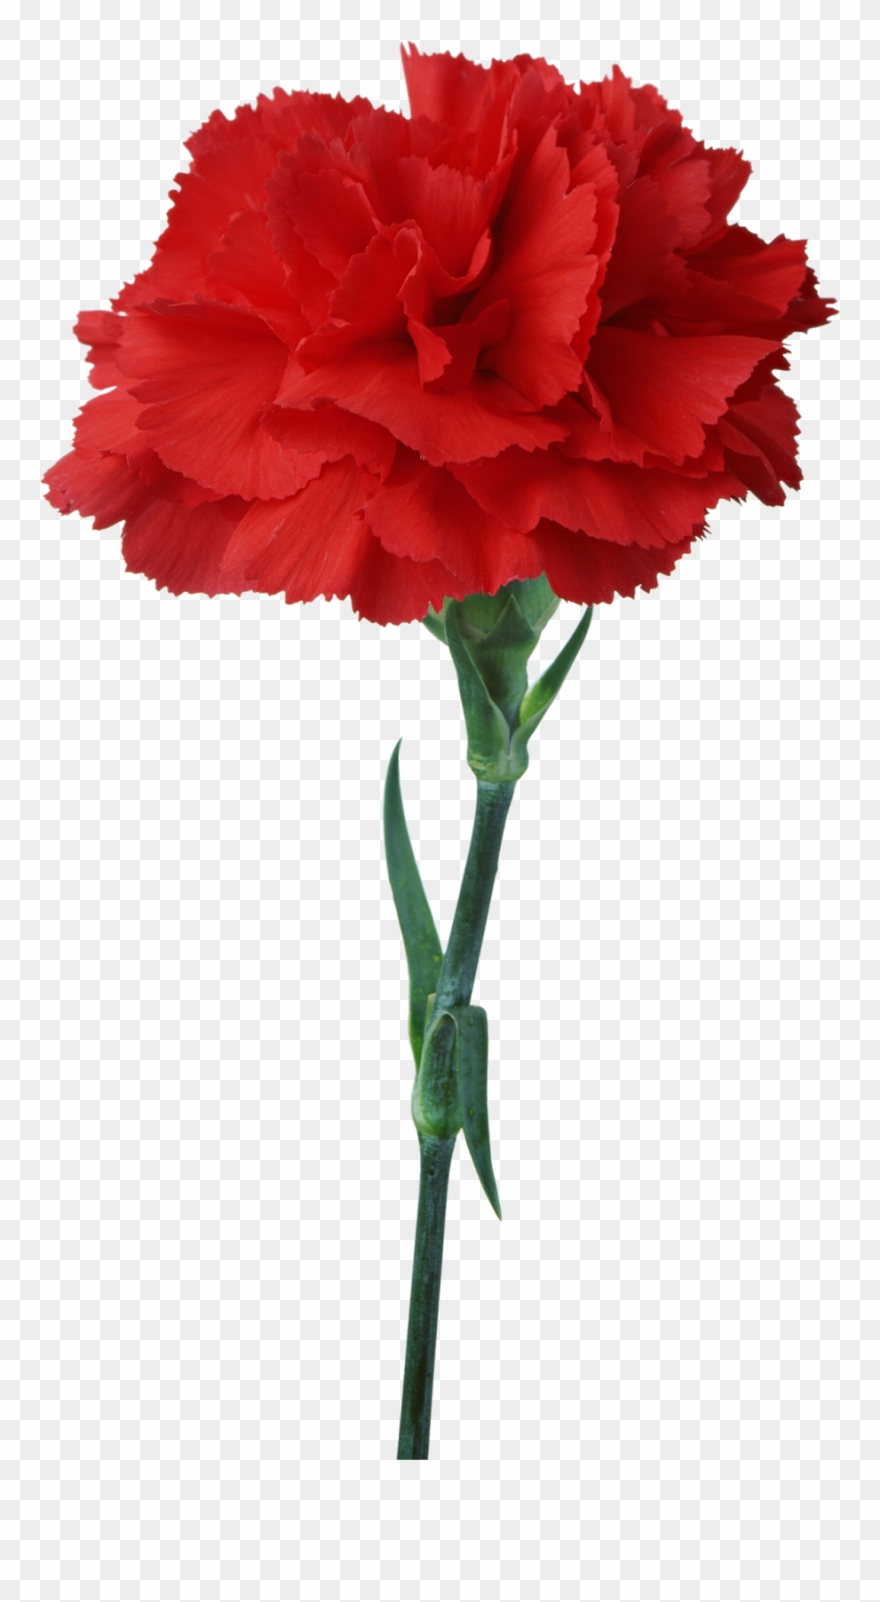 Carnation Flower Red Floristry Clip Art.